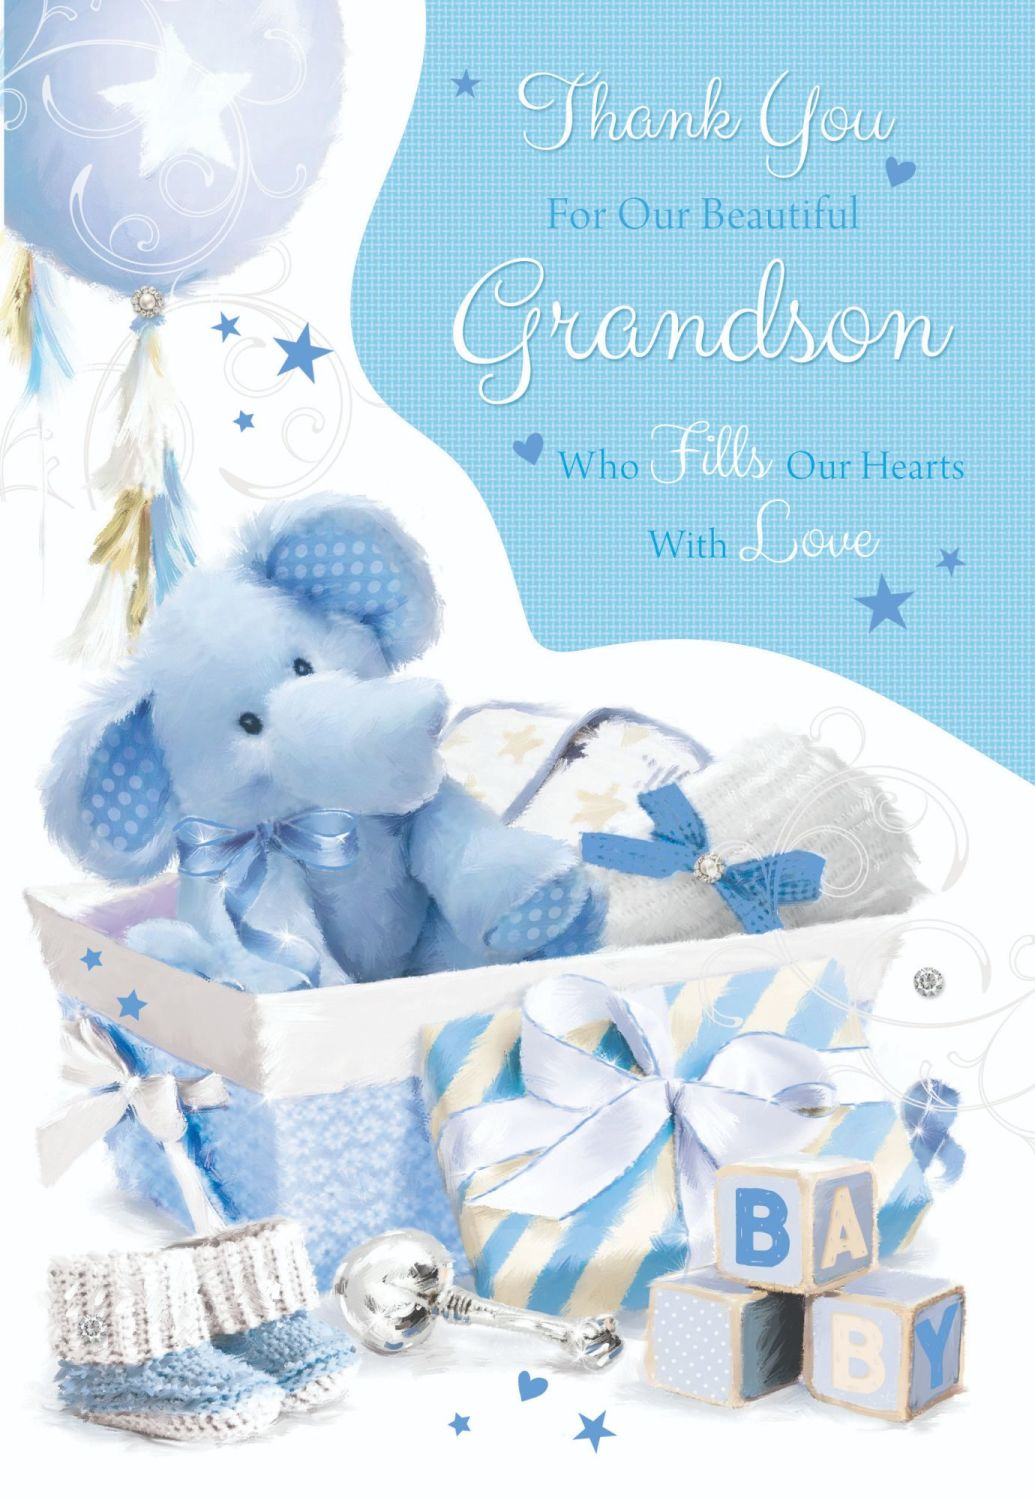 Thank You For Our Beautiful Grandson - WHO Fills Our HEARTS With LOVE - Cut